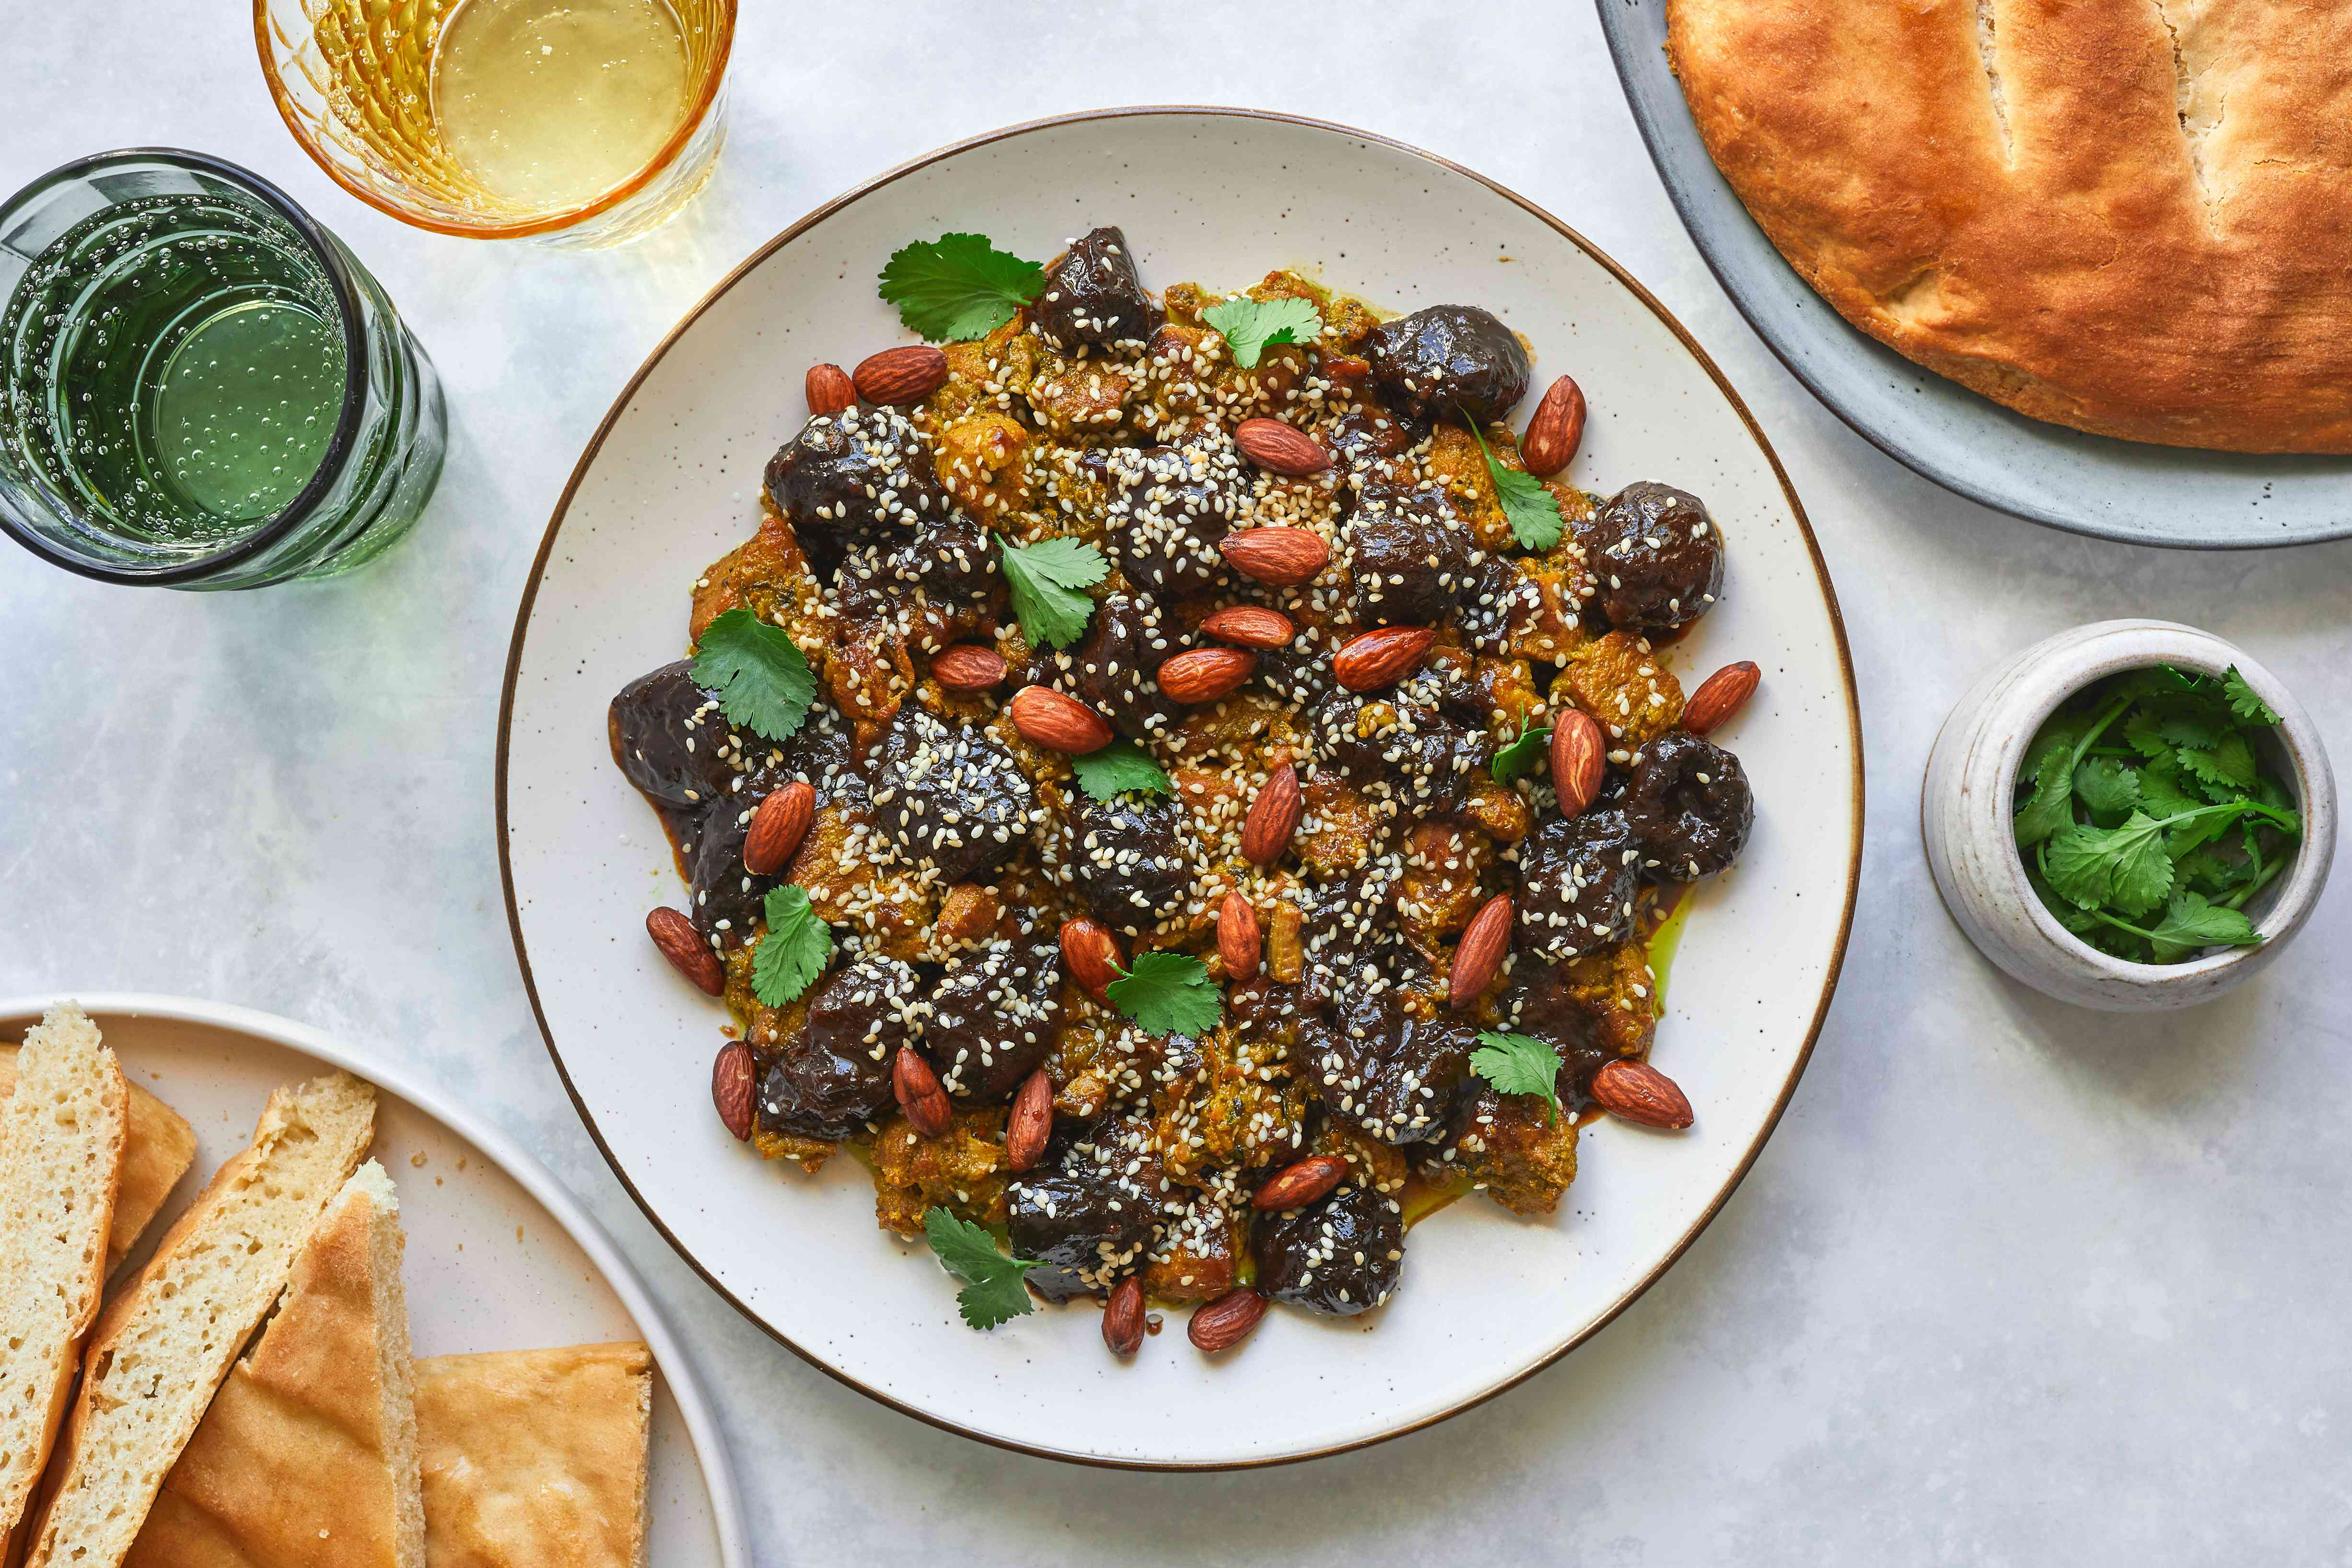 Pressure Cooker Moroccan Lamb or Beef Tagine With Prunes